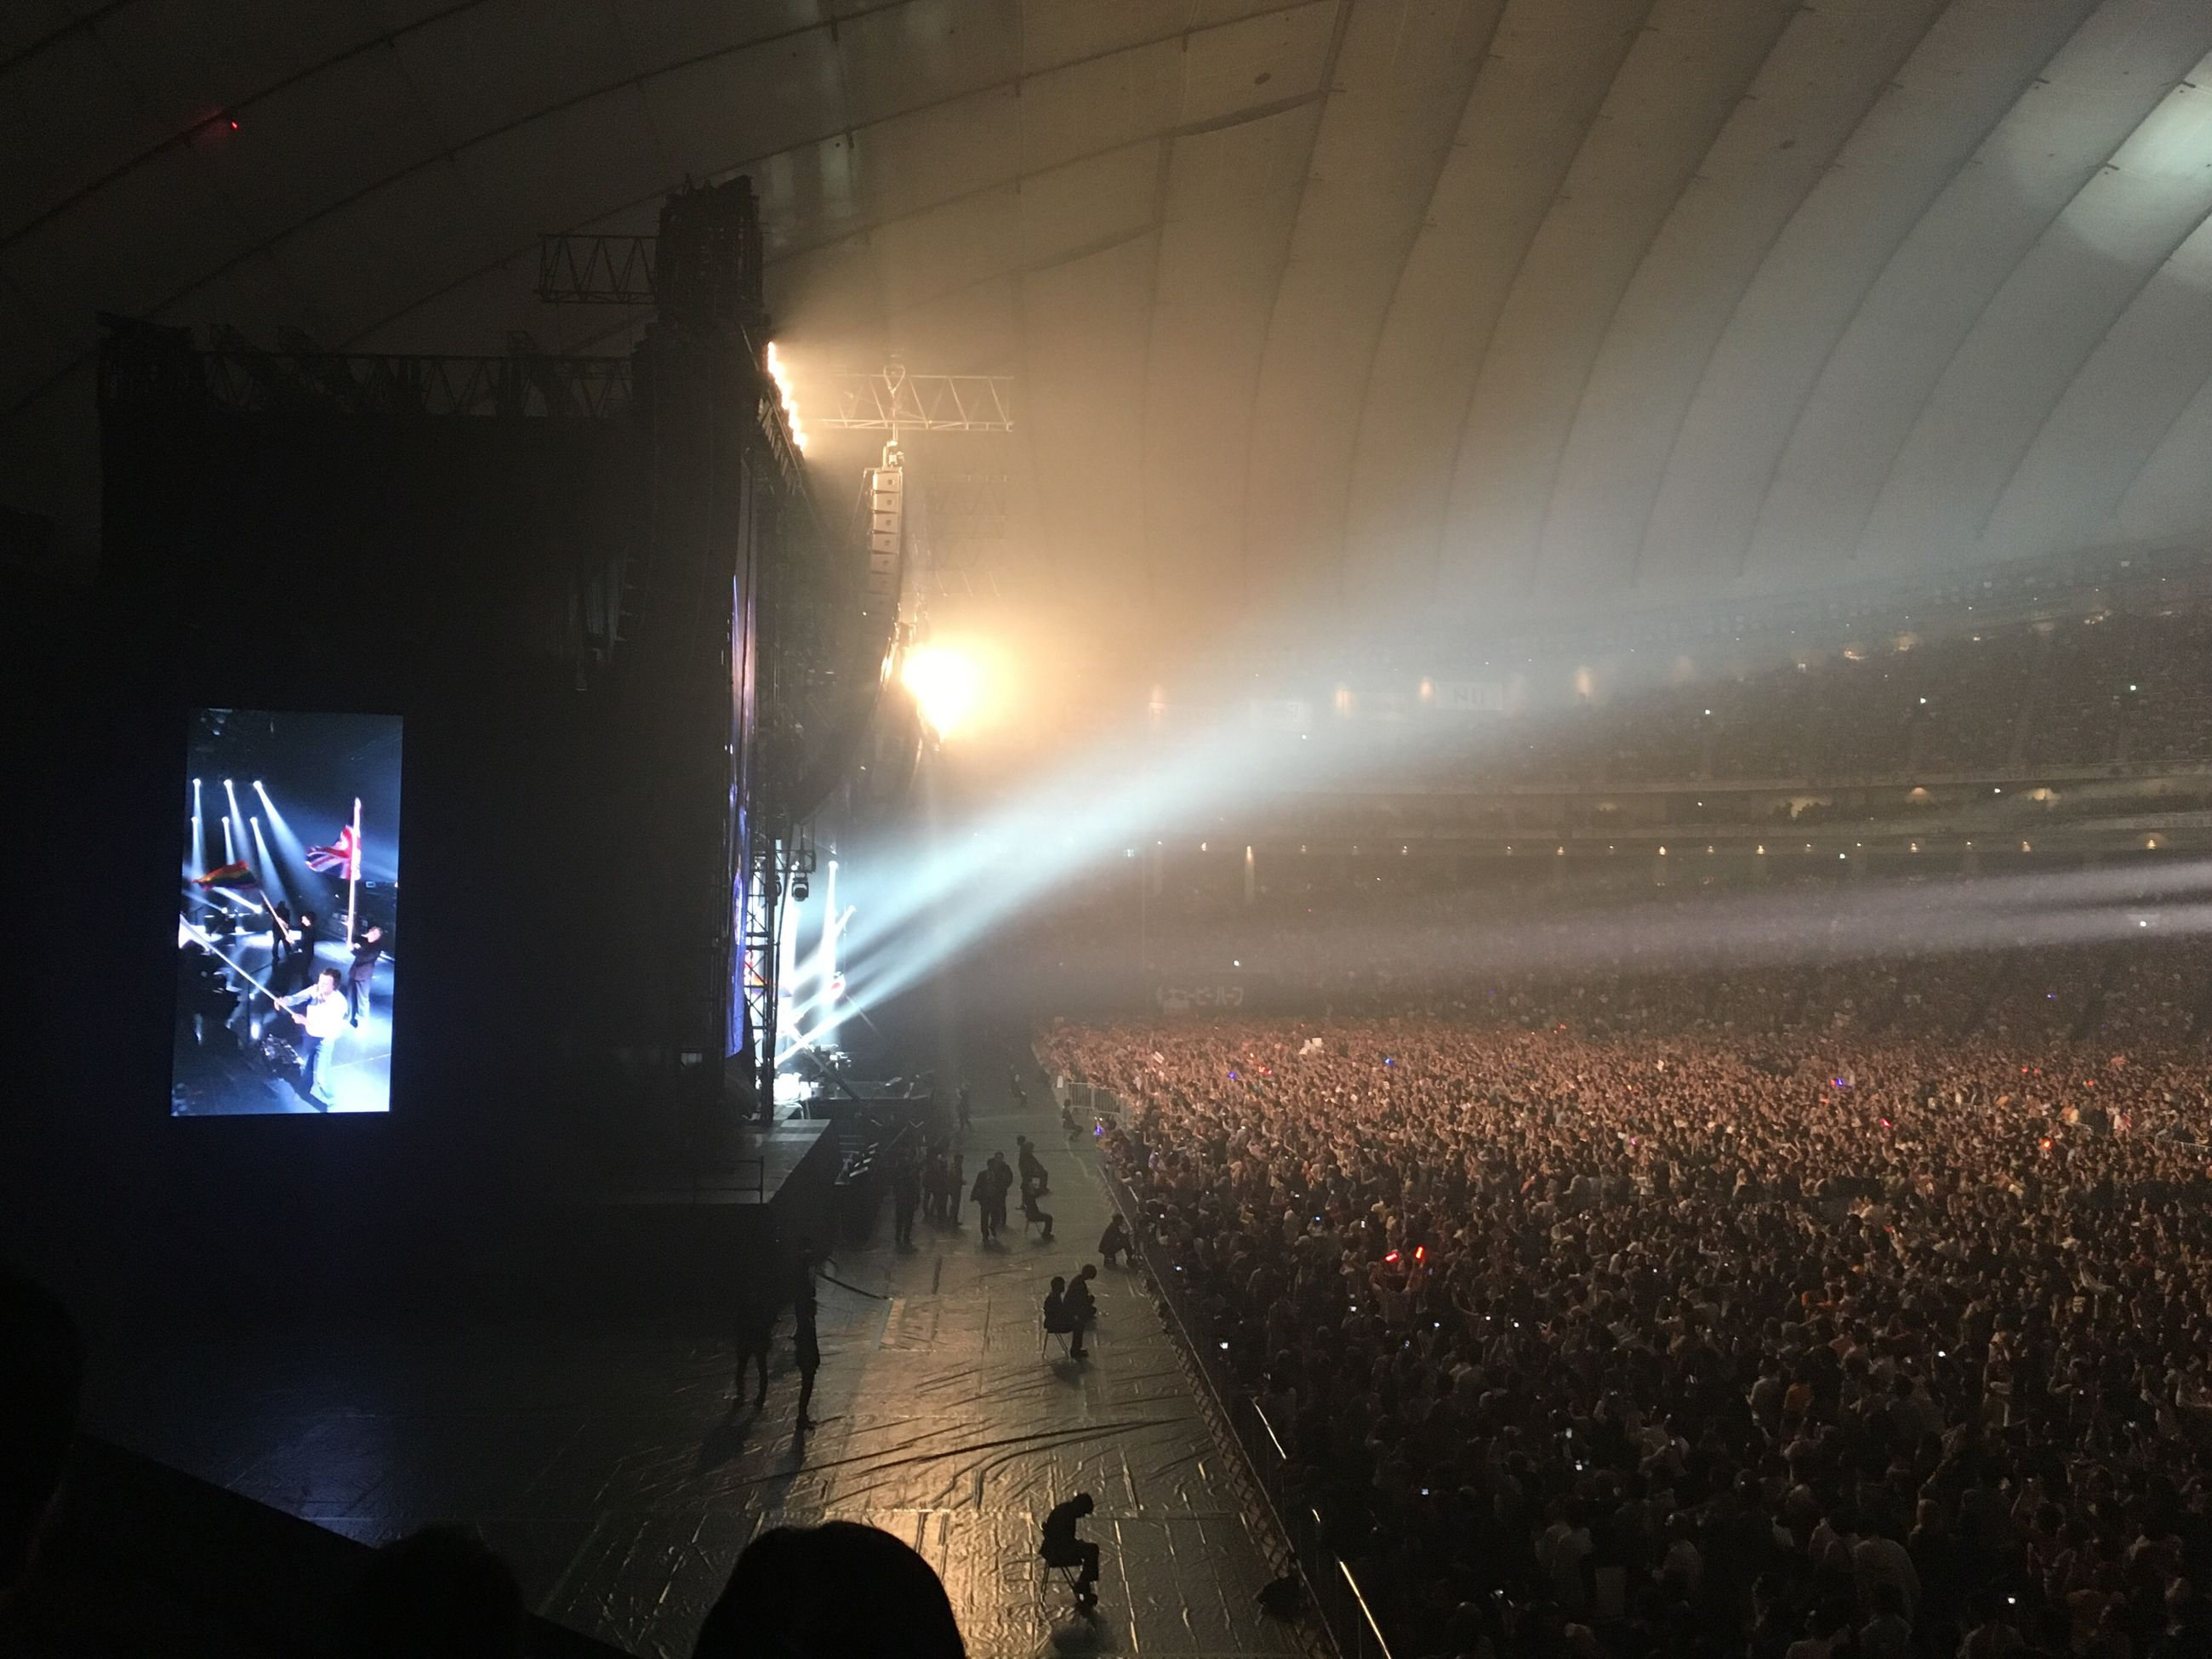 illuminated, large group of people, night, real people, crowd, music, stage light, arts culture and entertainment, audience, indoors, performance, stage - performance space, nightlife, popular music concert, light beam, people